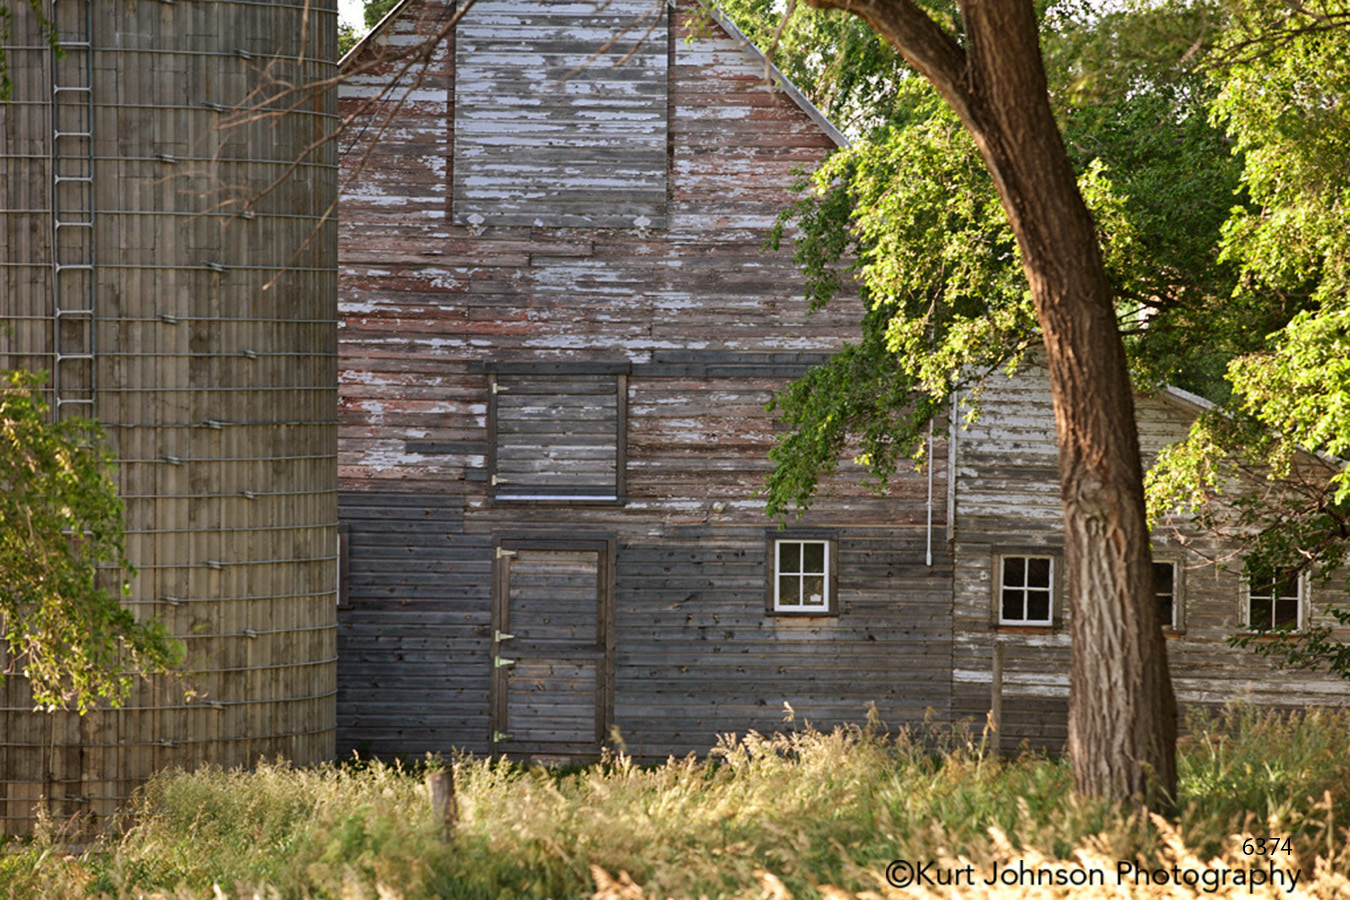 midwest wood barn tree field farm country green grass